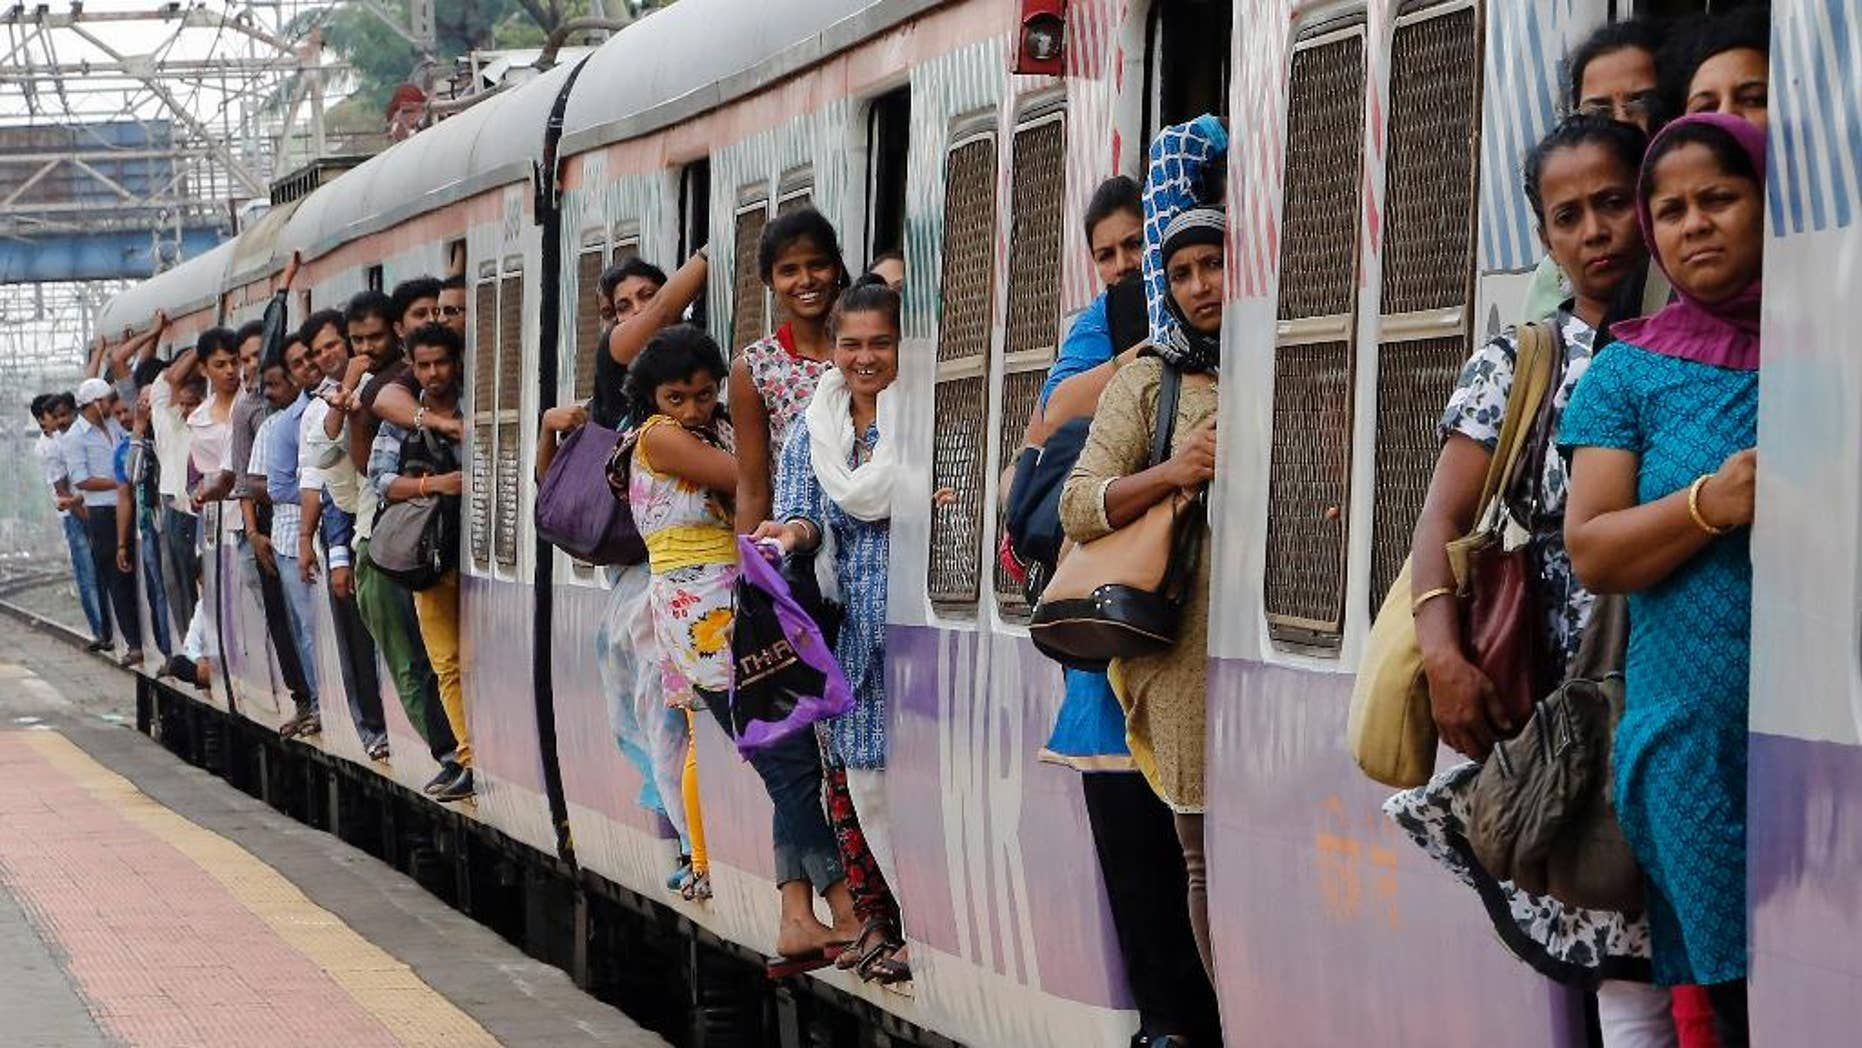 Commuters hang by doors of a crowded local train in Mumbai, India, Tuesday, July 8, 2014. India's new rail minister Sadananda Gowda on Tuesday proposed allowing foreign investment to modernize the country's cash-strapped state railways. India has one of the world's largest railways, which transports 23 million passengers a day. Indian Railways is one of the world's biggest employers with more than 1.3 million employees. The network lost 300 billion rupees ($5 billion) last year. (AP Photo/Rajanish Kakade)